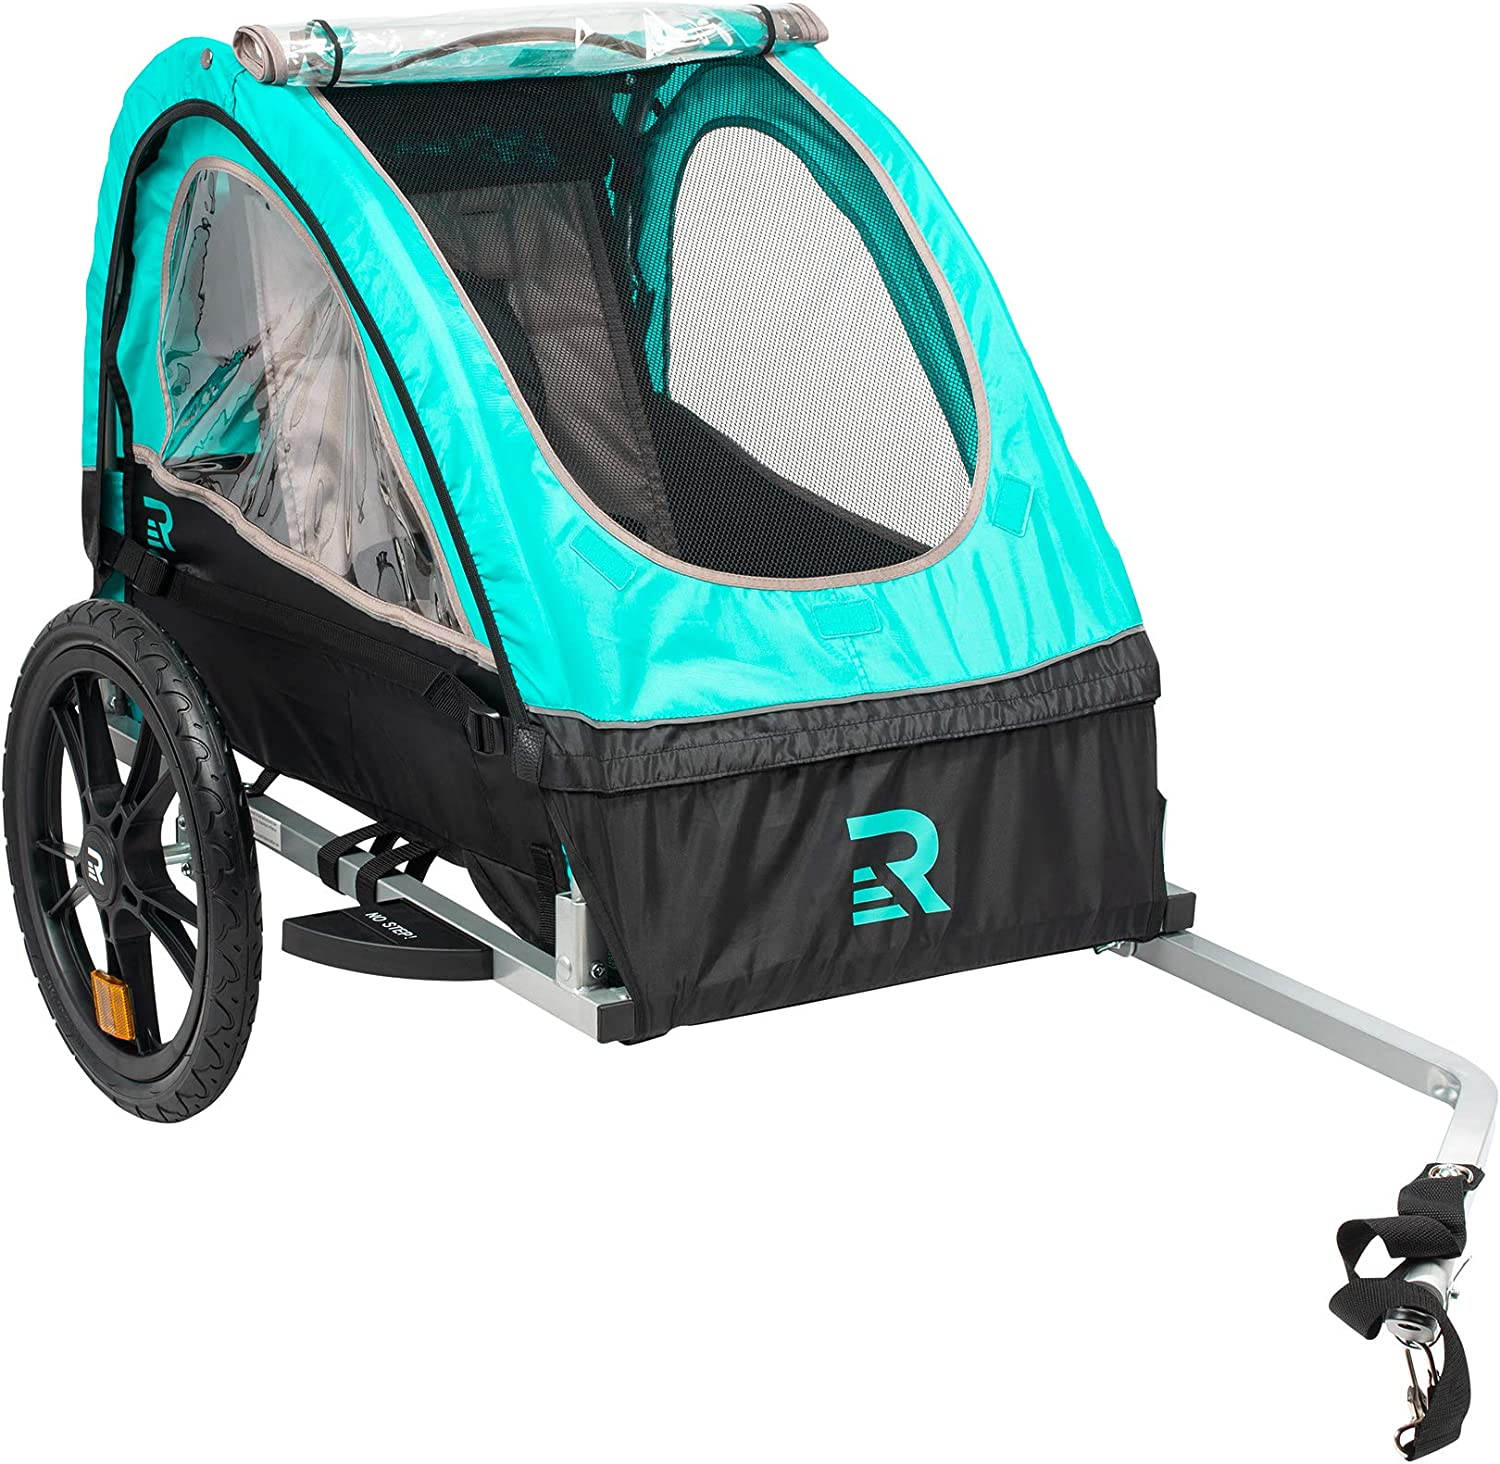 CPSC Approved Safety reflectors Retrospec Rover Kids Bicycle Trailer Single and Double Passenger Children/'s Foldable Tow Behind Bike Trailer with 16 Wheels and Rear Storage Compartment